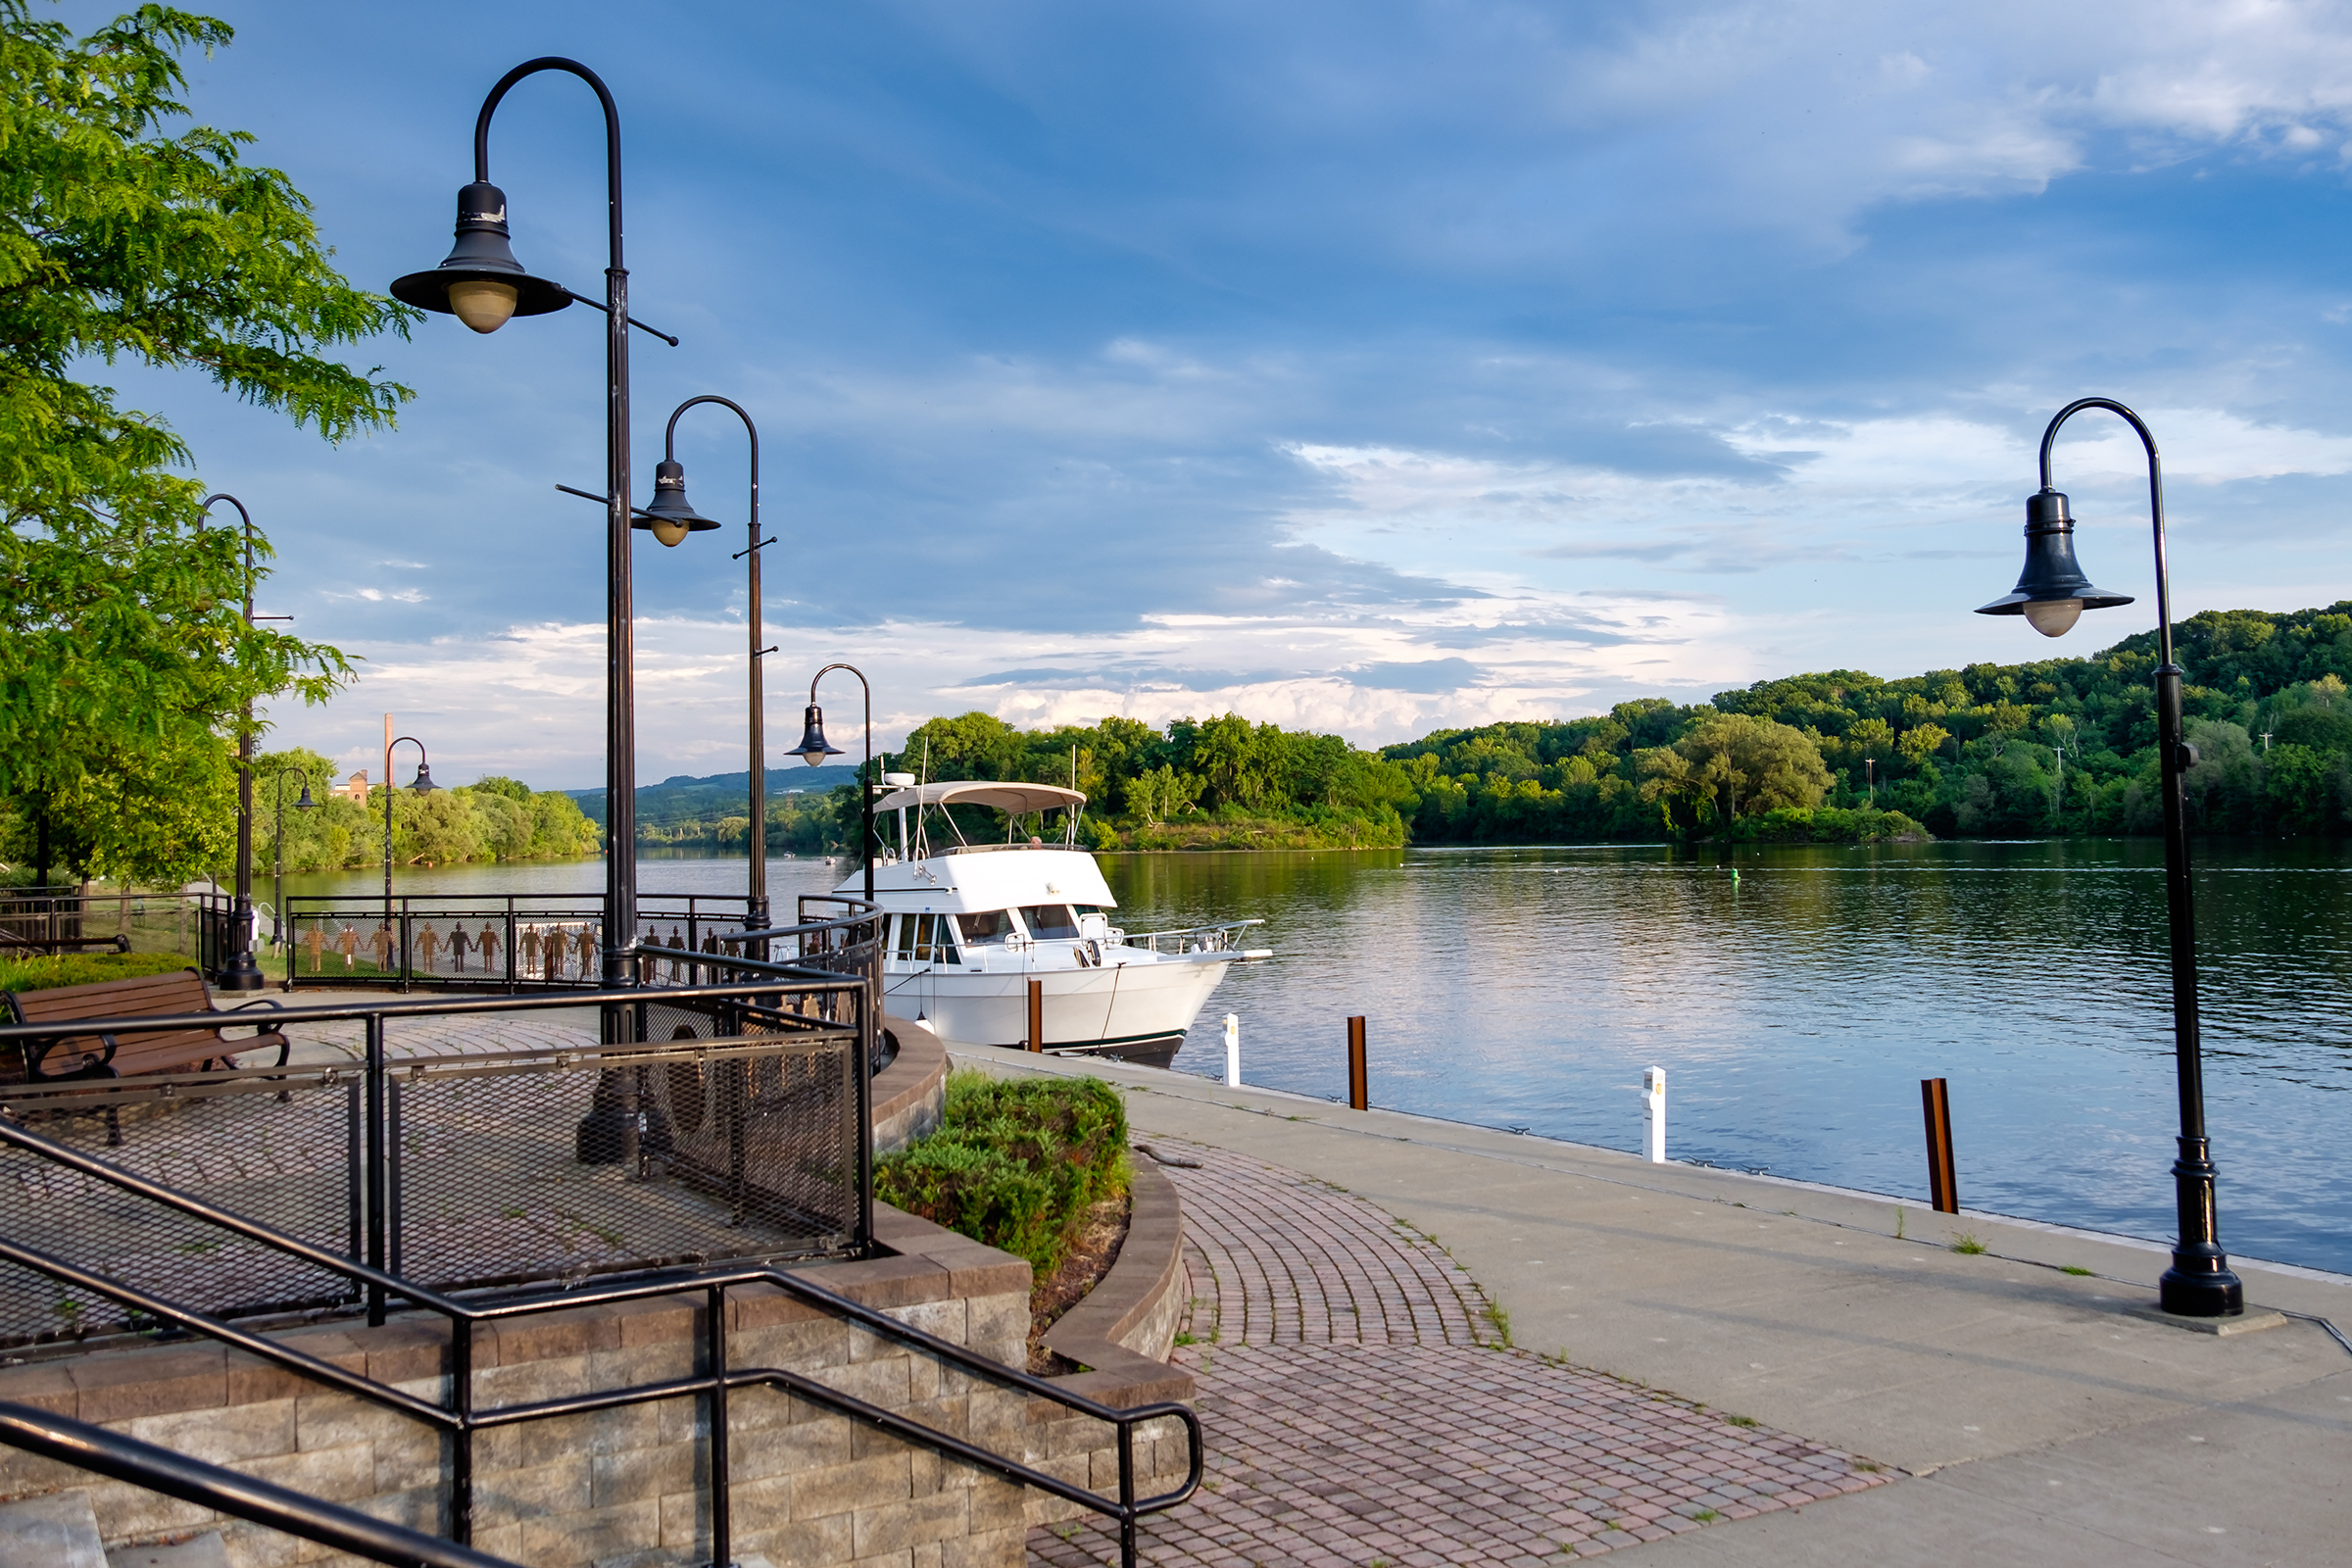 Riverlink Park is located on the Mohawk River in the City of Amsterdam and hosts a variety of riverfront summer concerts.